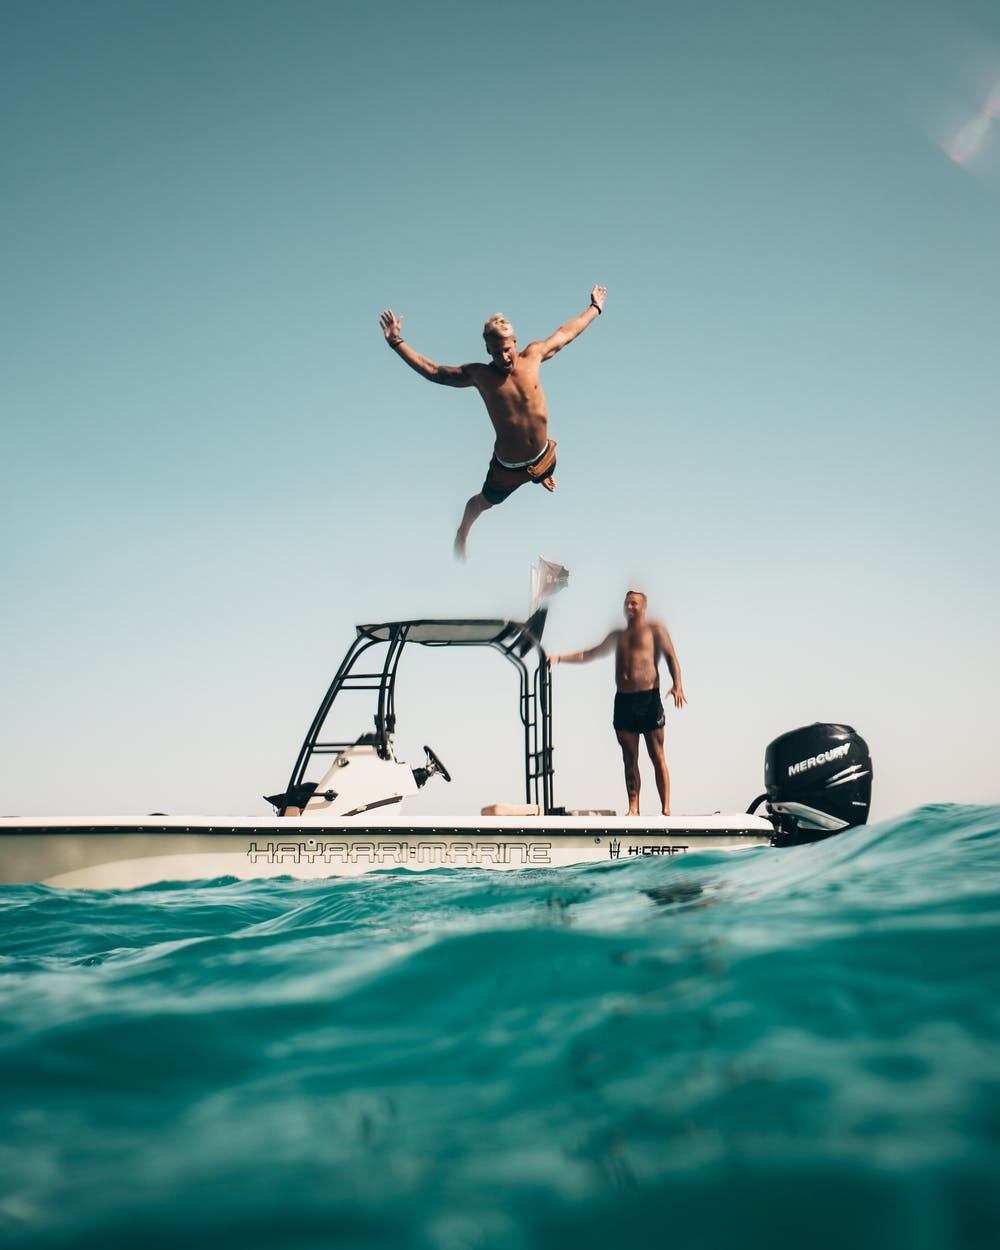 A man jumping from the boat. | Photo: Pexels